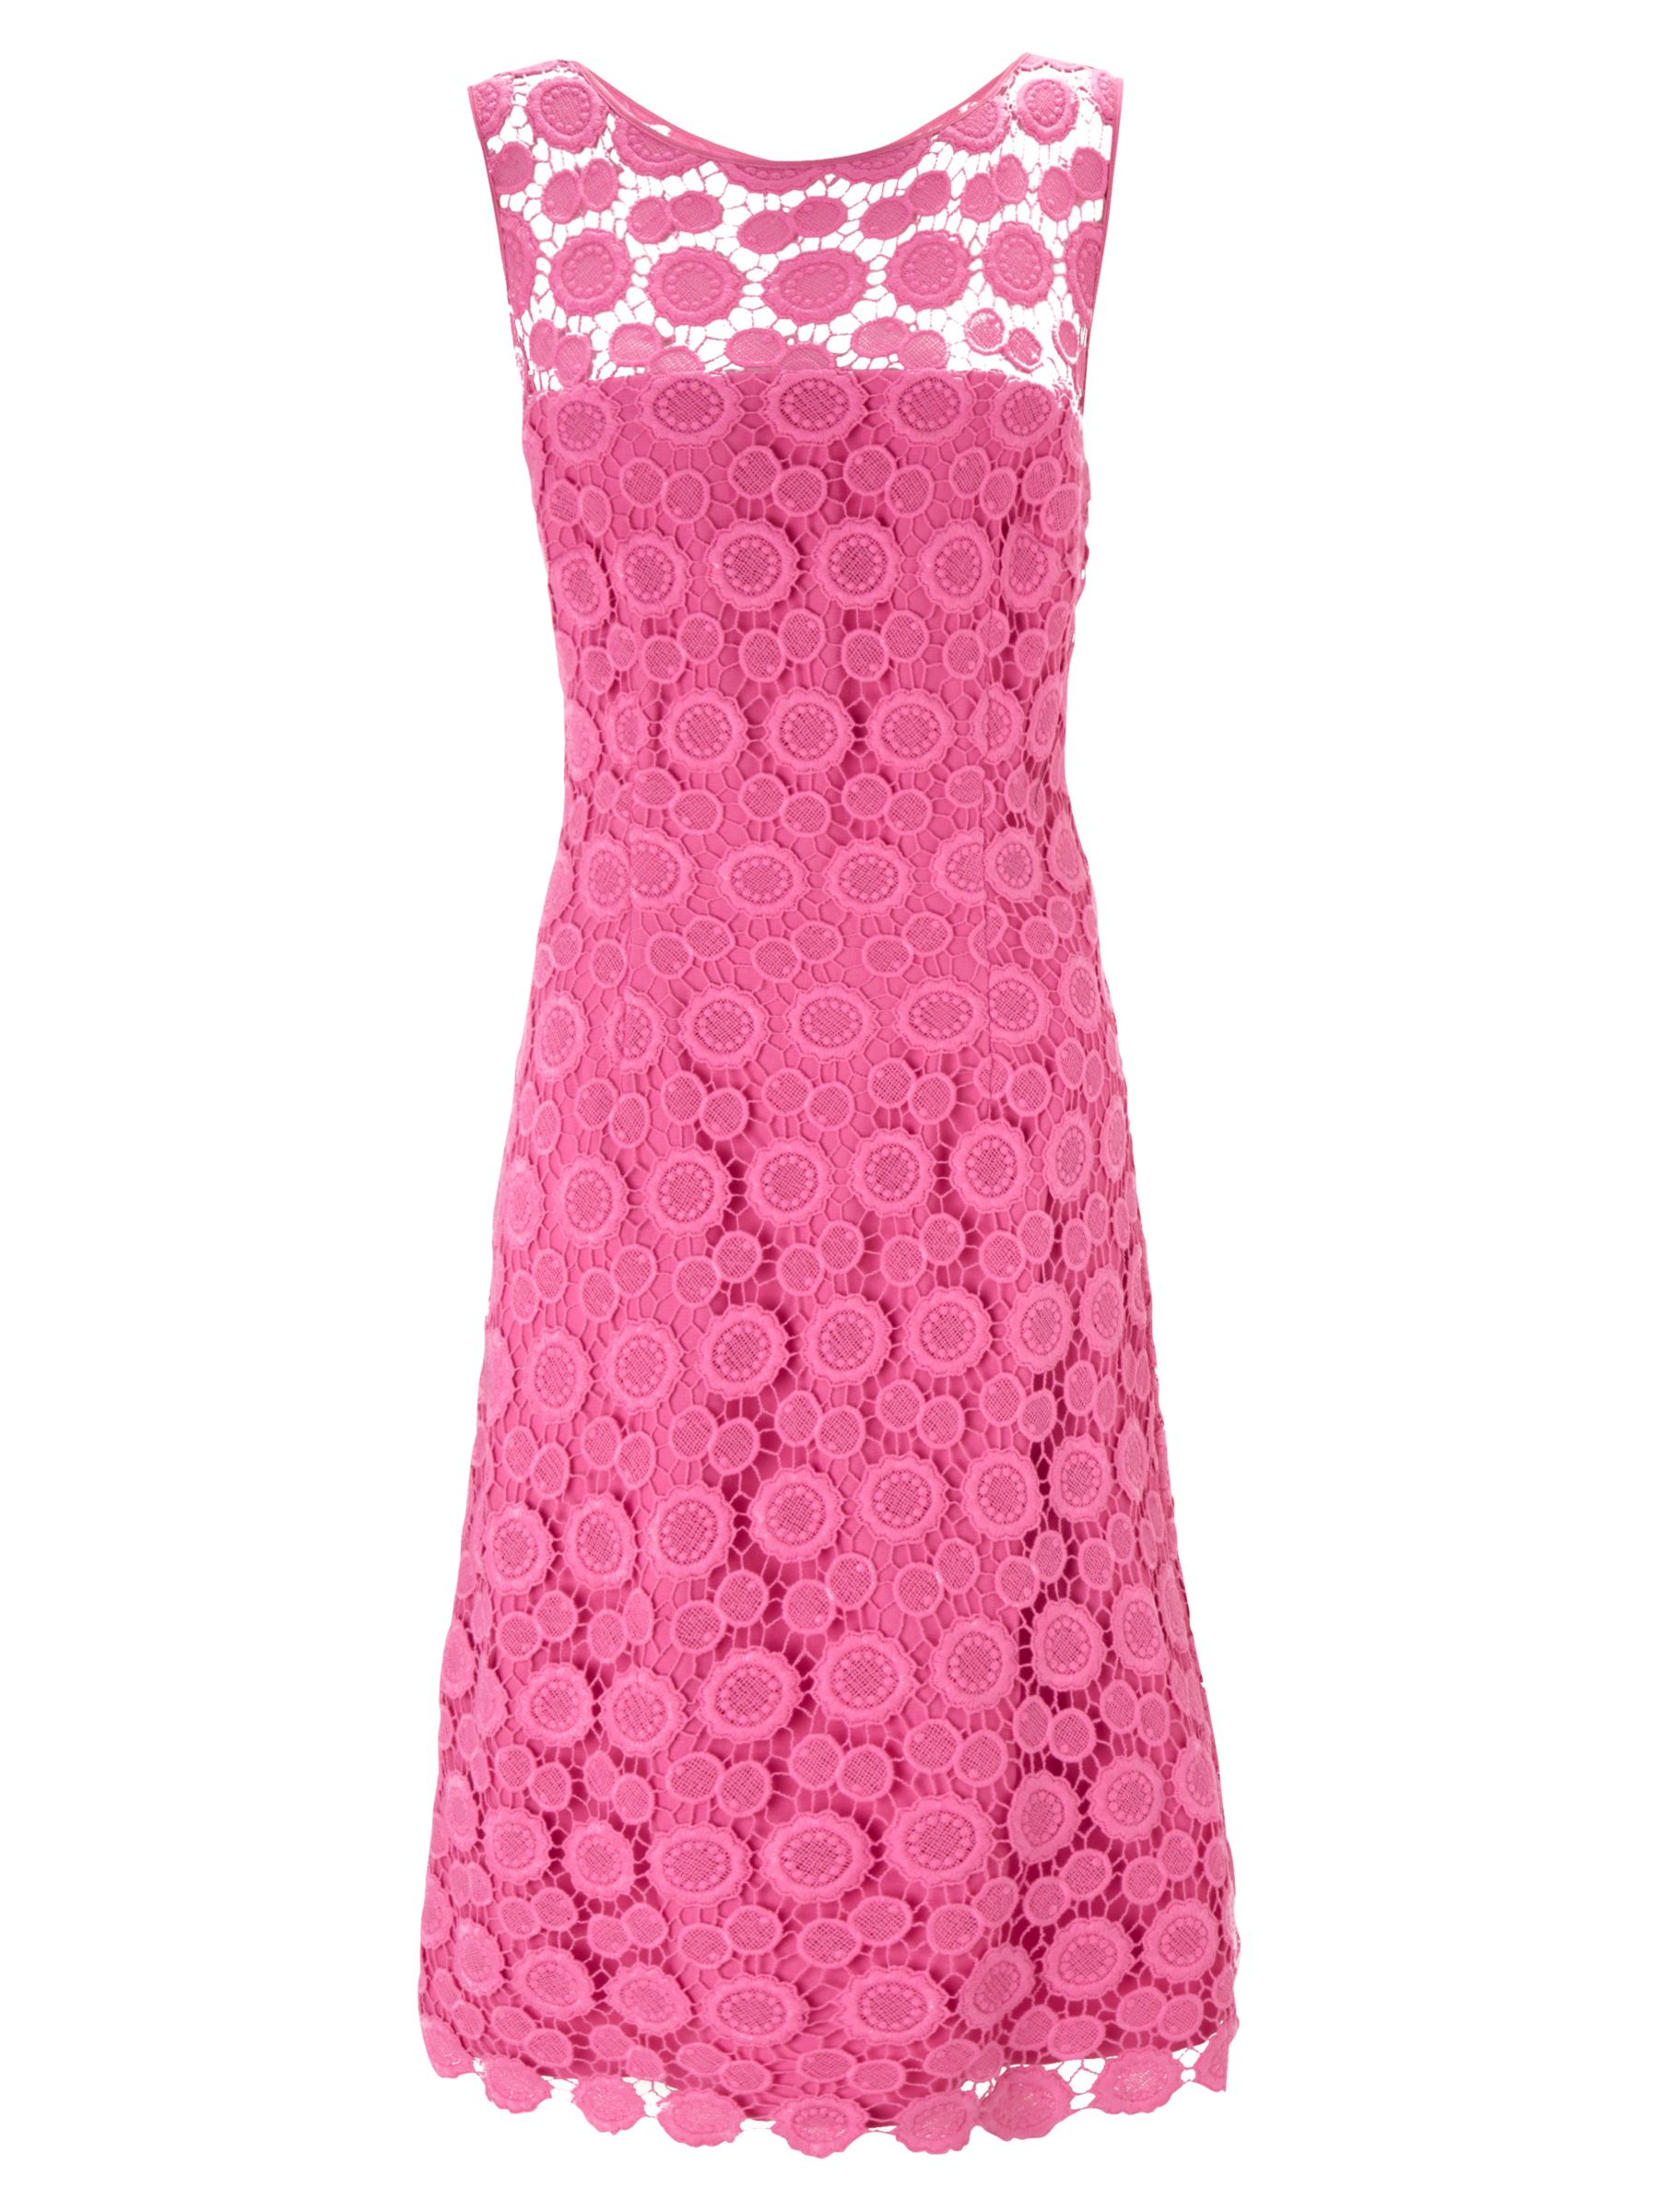 Gina Bacconi Doily Lace Dress, Pink